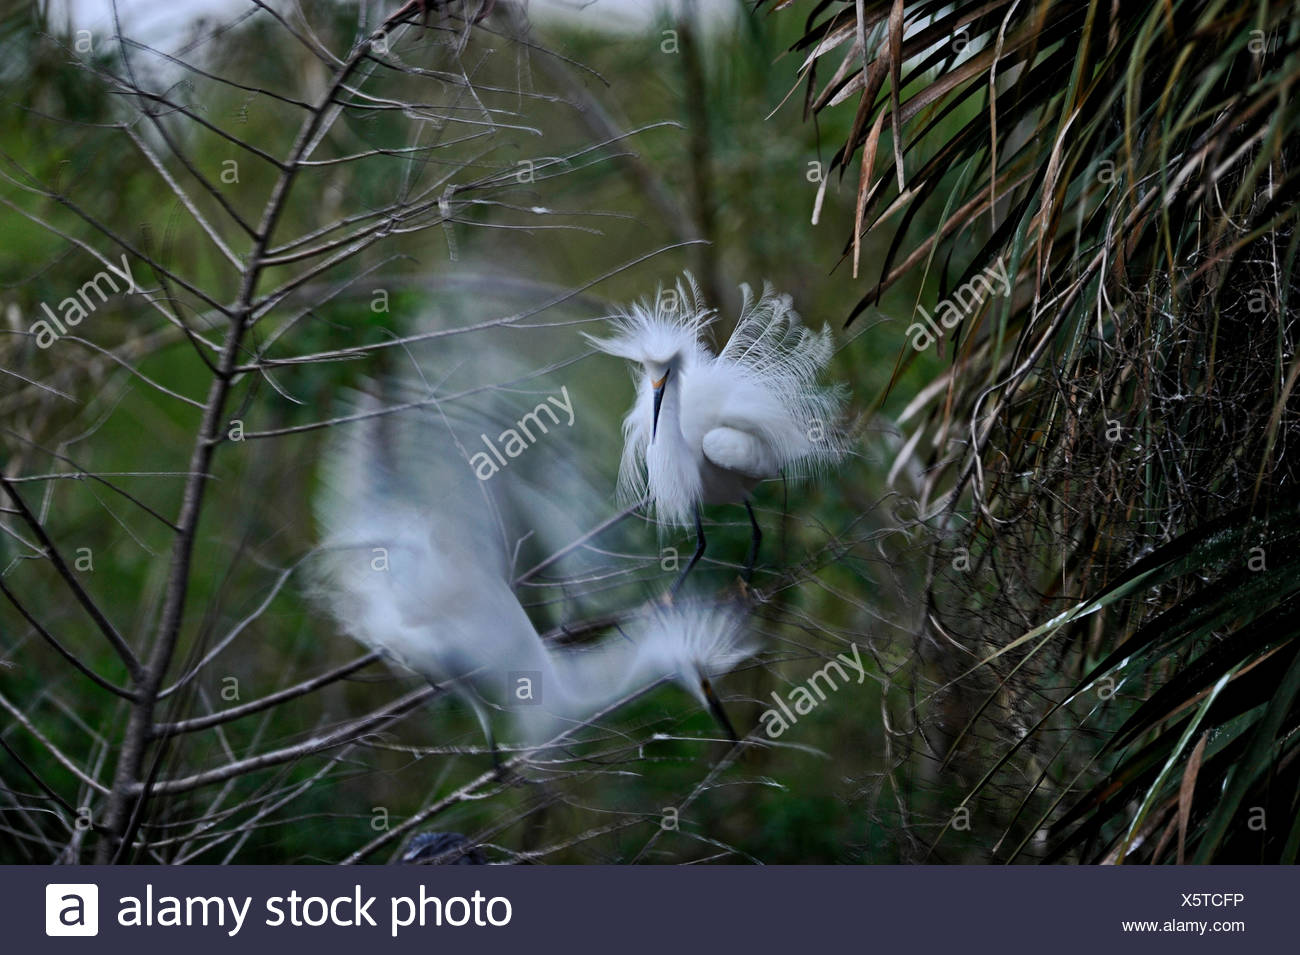 Snowy Egret Egretta thula in territorial dispute at breeding colony Florida USA - Stock Image